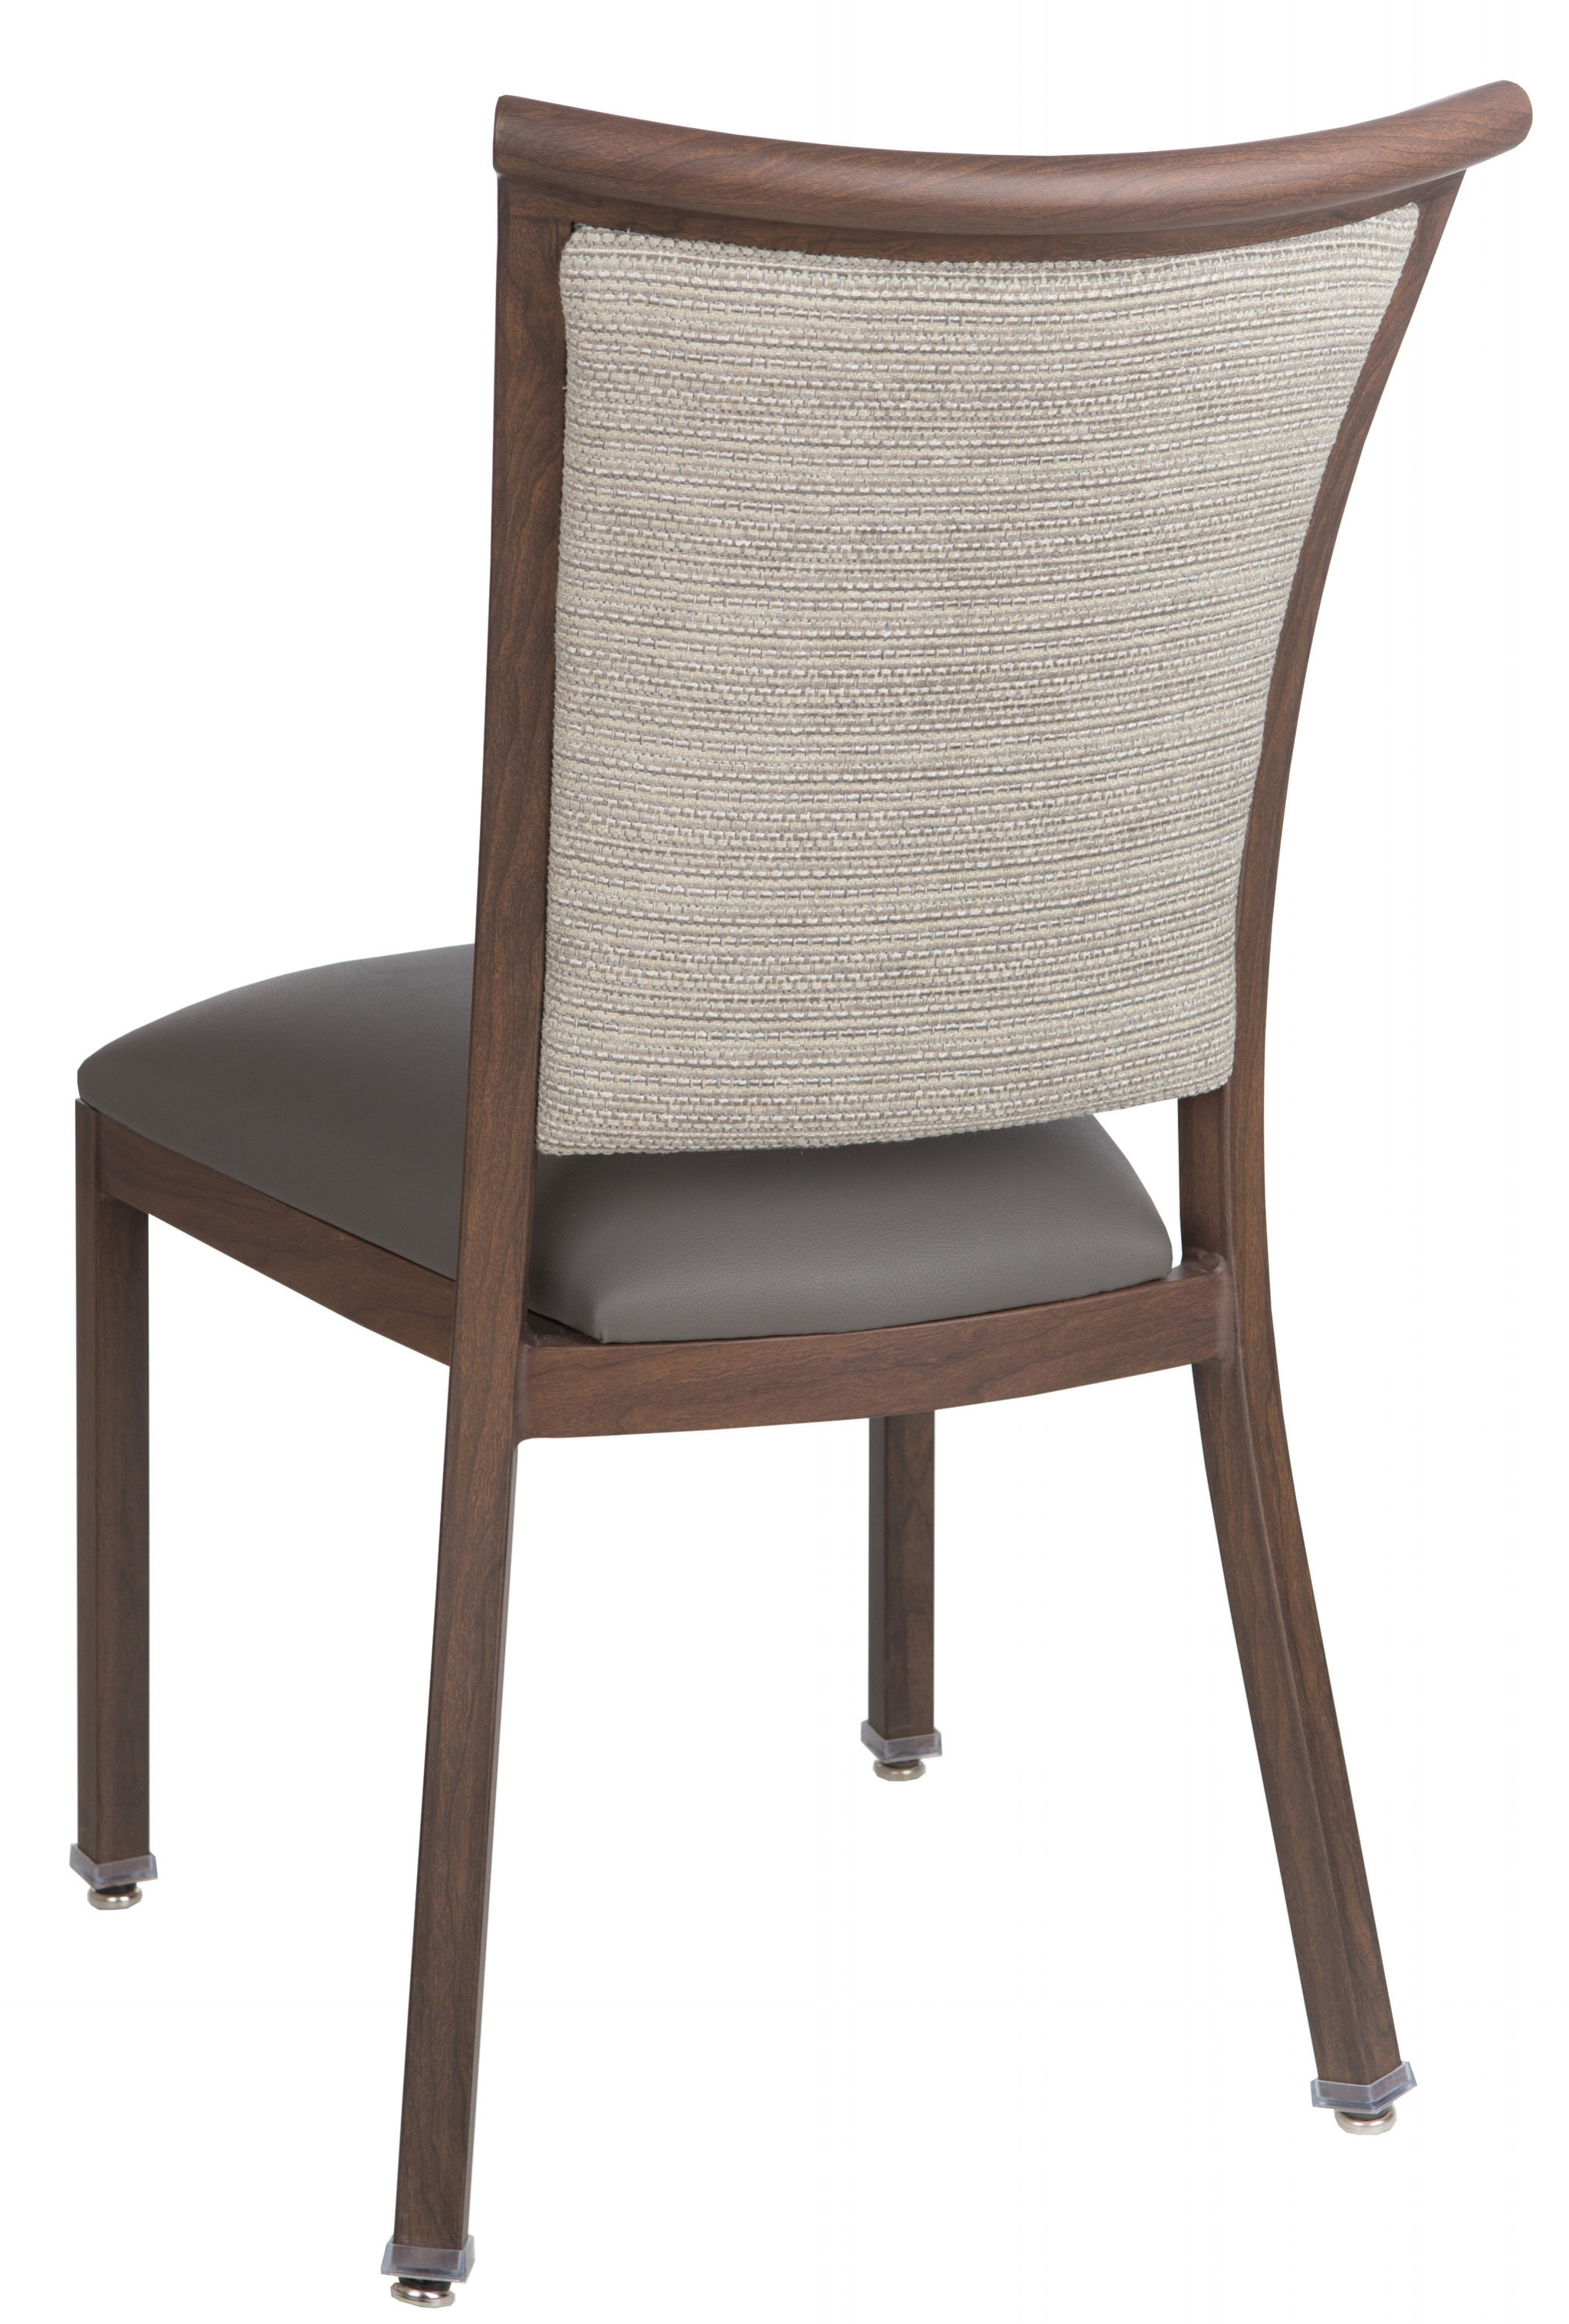 Victoria_Side_Chair_(Back)-_Tawnywood,_Back-_Maxwell_Layers_3007_Pebble,_Seat_-_Pointe_Ziro_Drive_Graphite.jpg